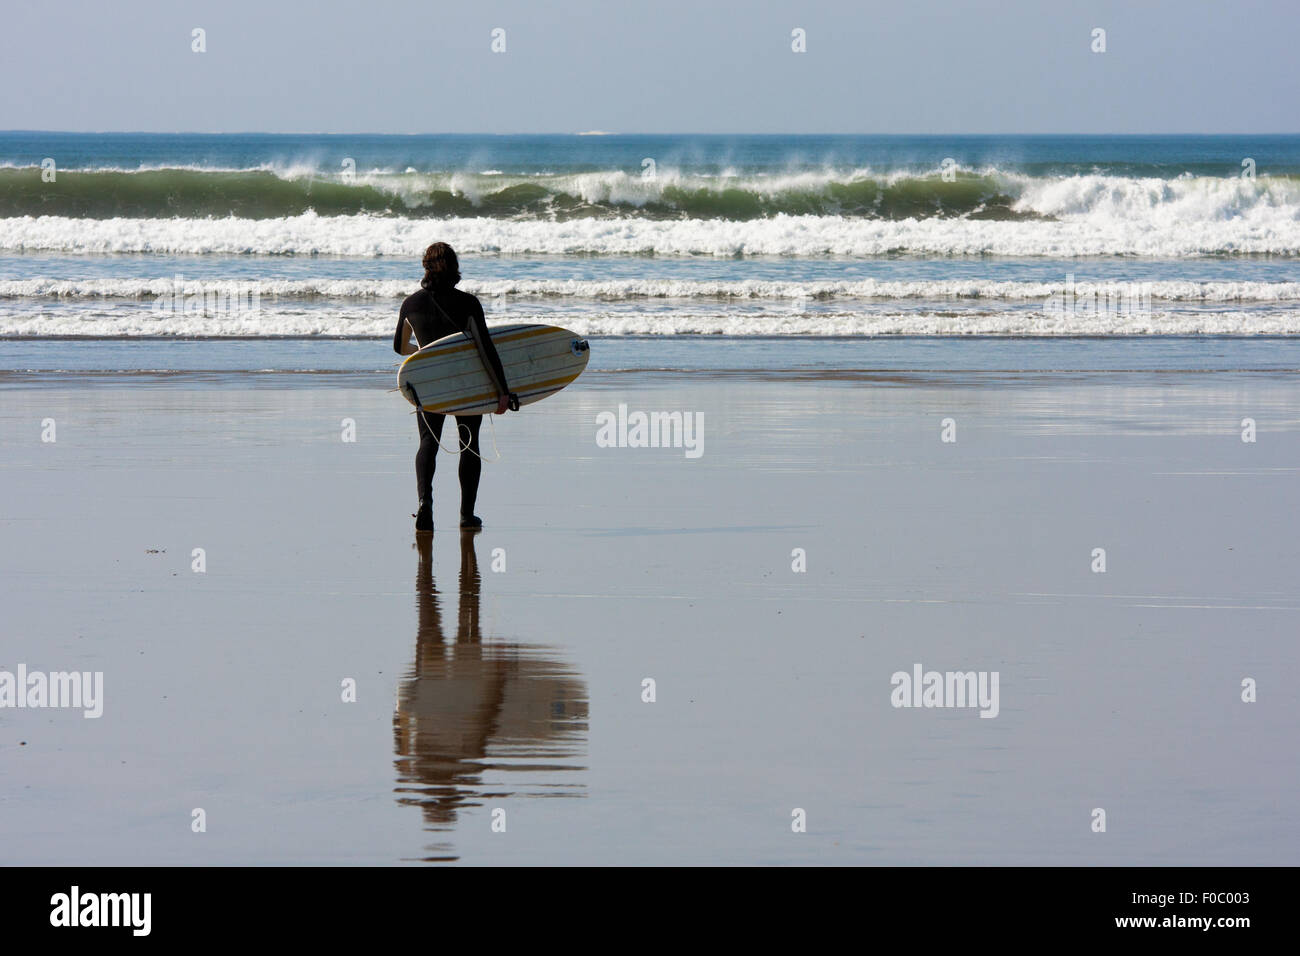 Man with surfboard watching Waves at Lahinch beach, Ireland - Stock Image